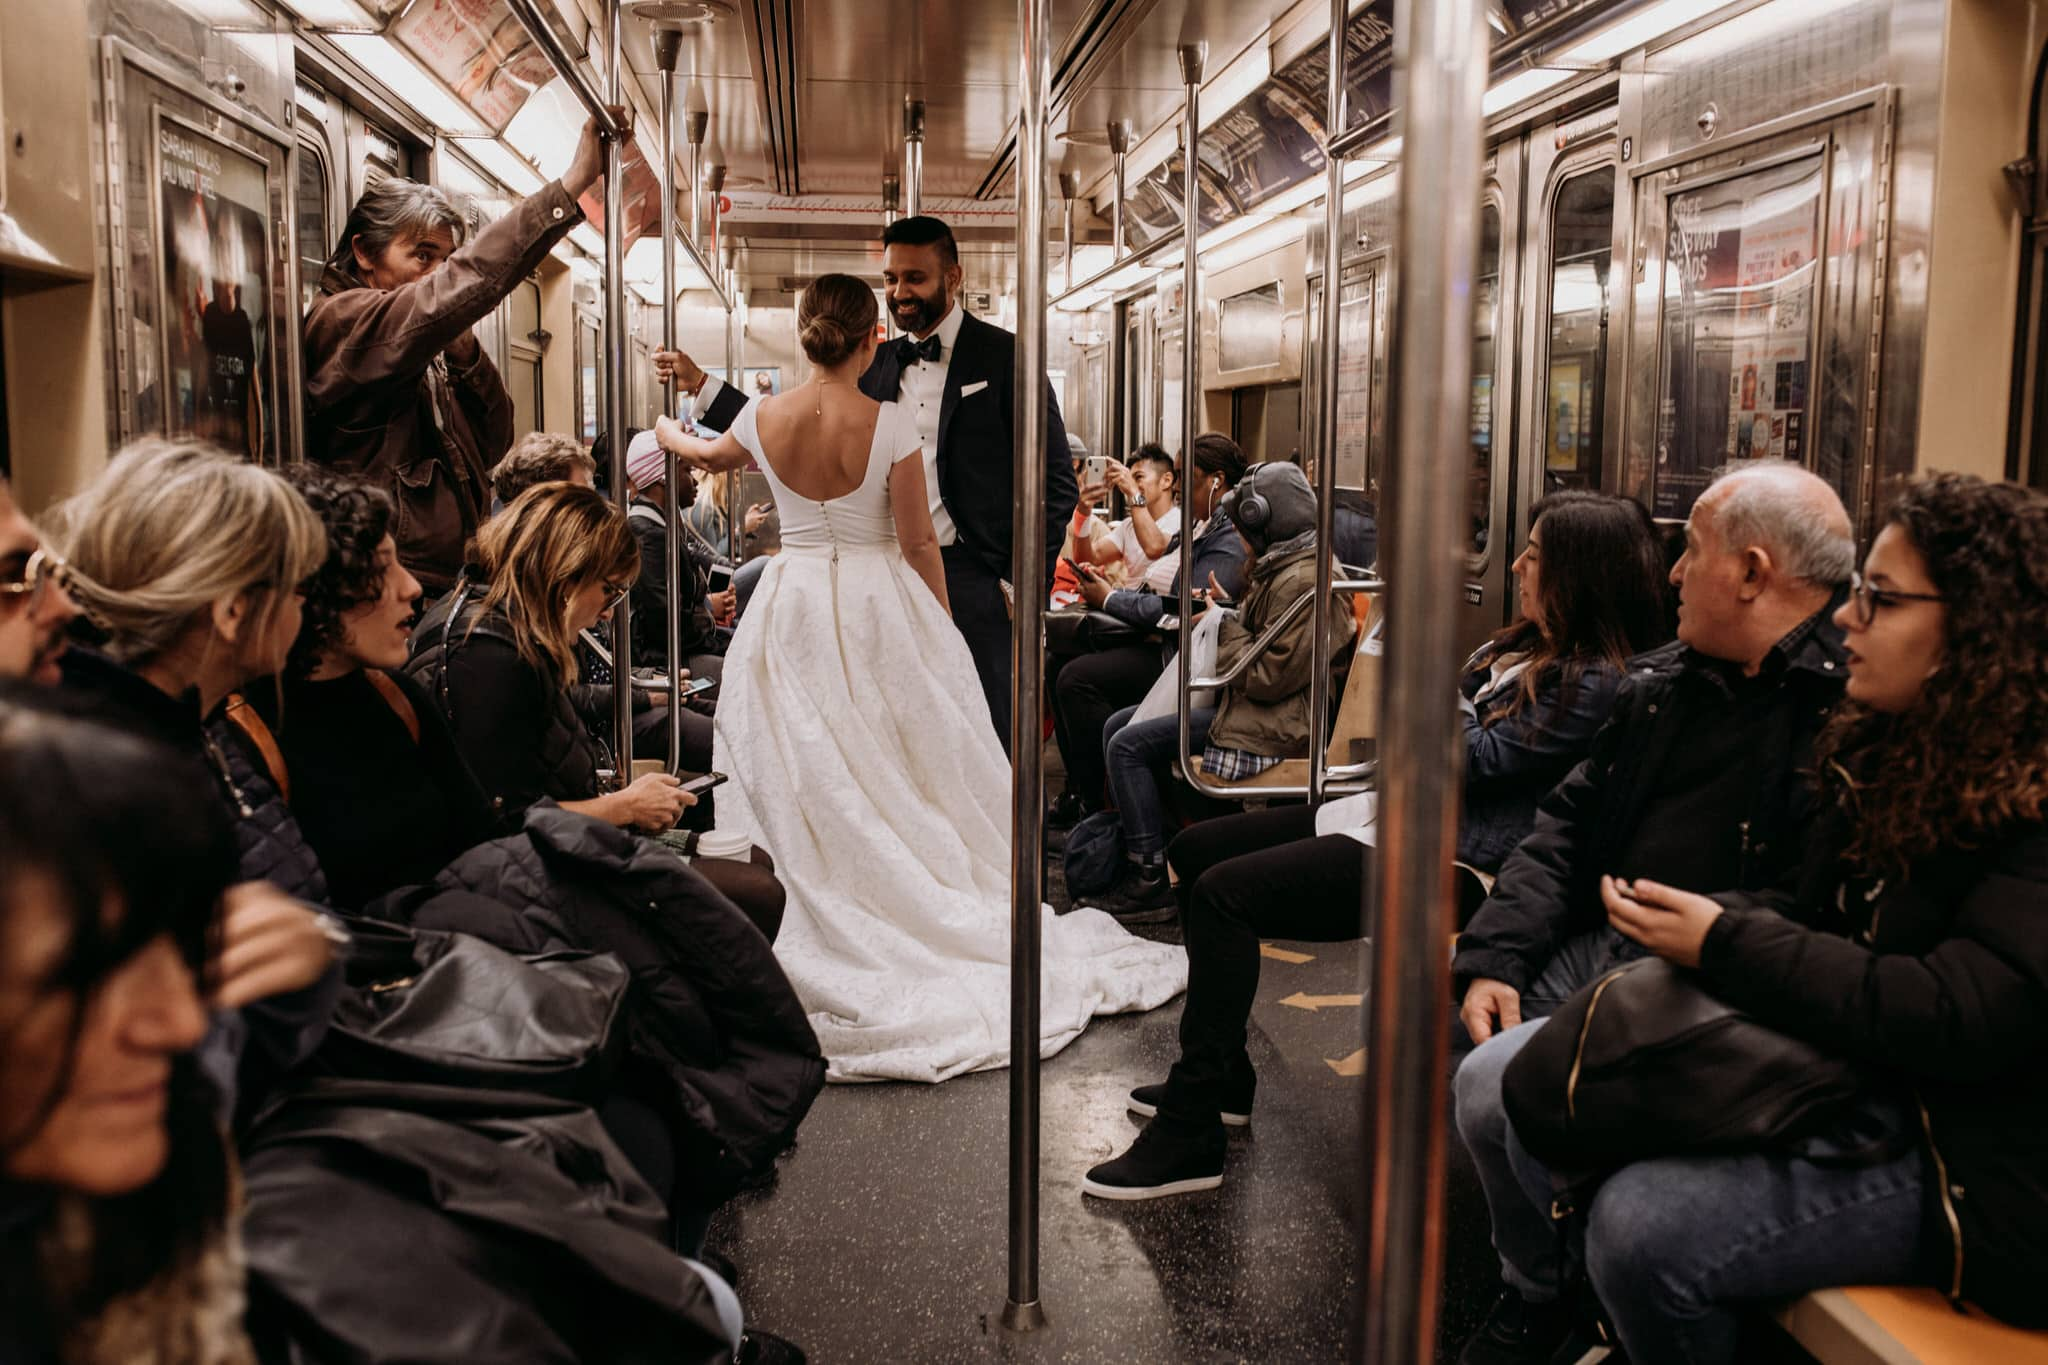 The bride and groom ride the subway in New York City. Wedding Photographer Brent Calis.